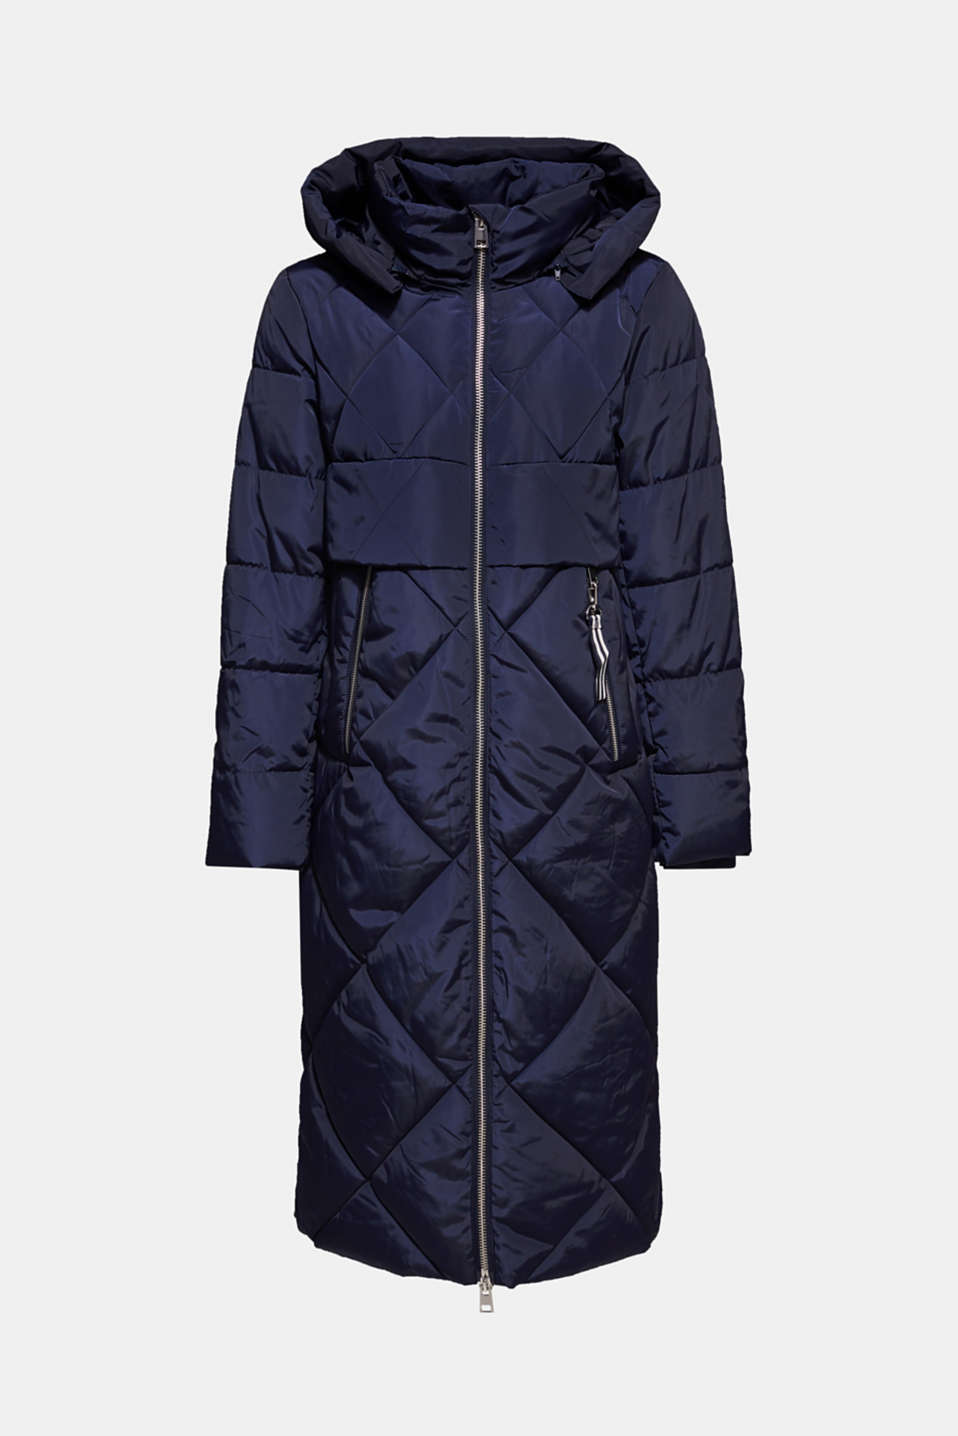 Quilted coat with a detachable hood, NAVY, detail image number 8